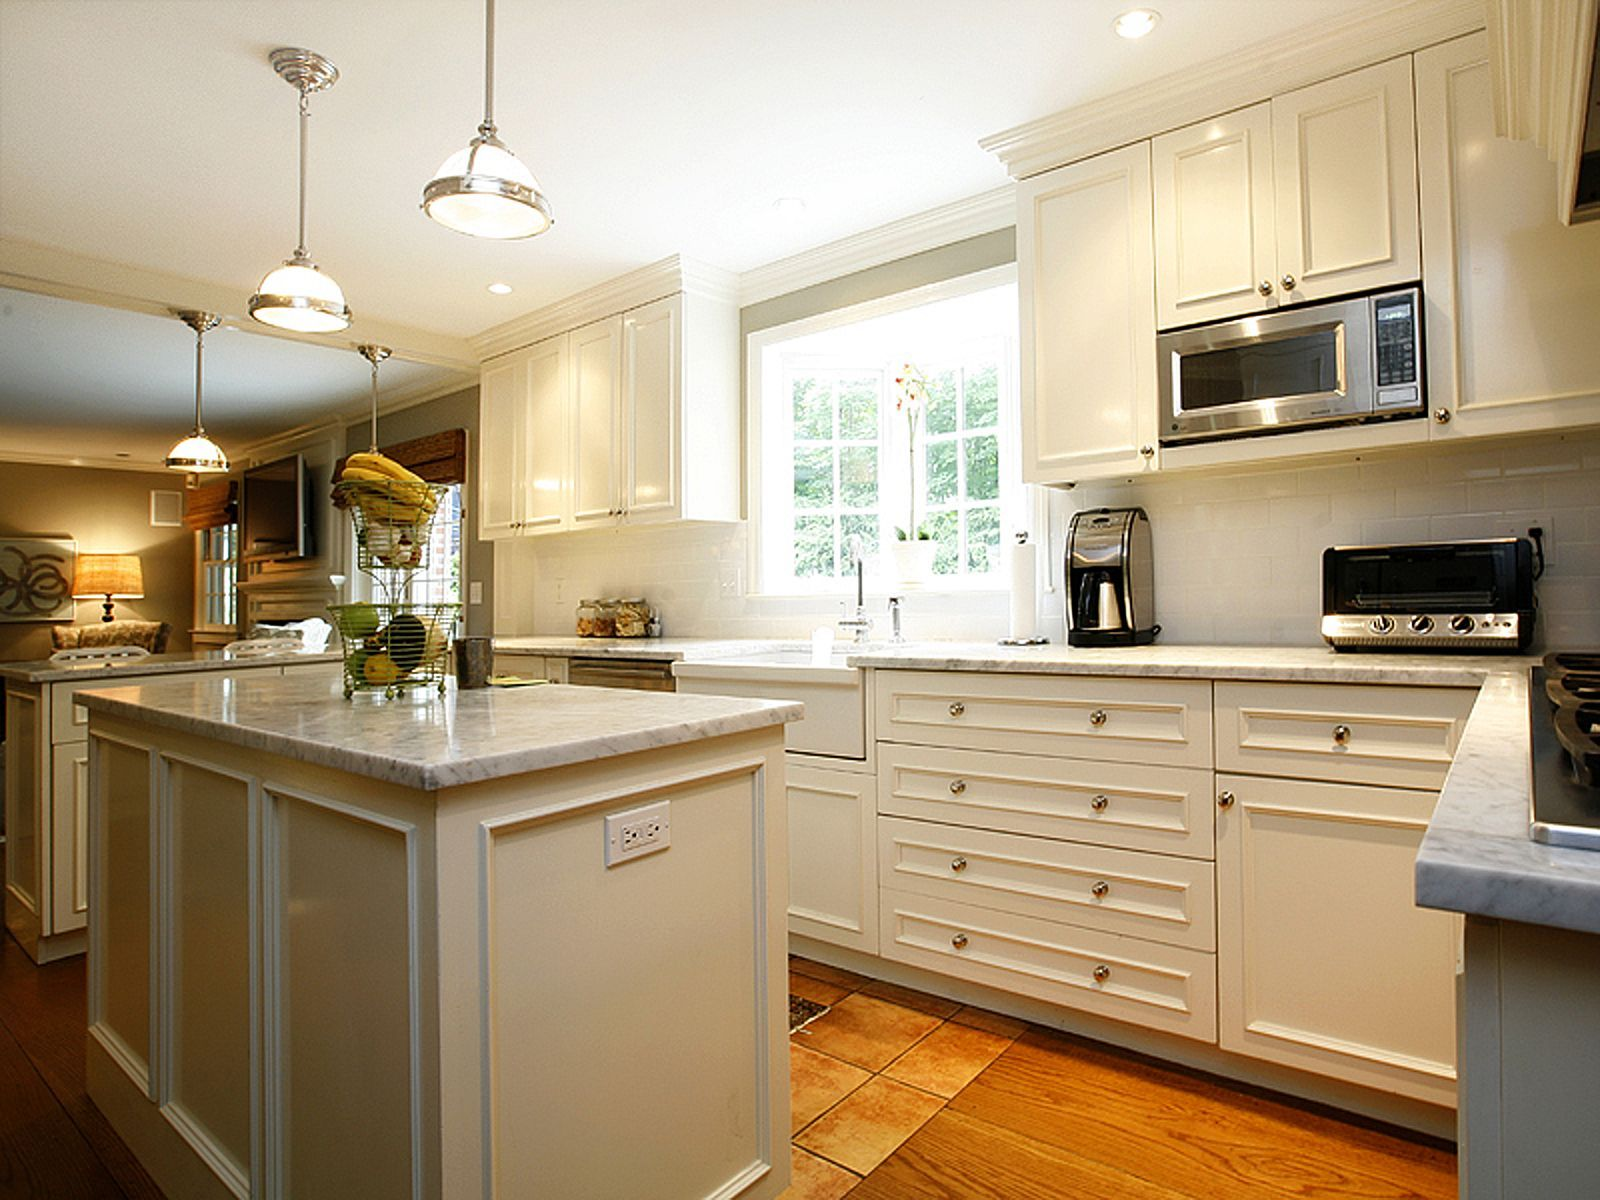 How Much Does It Cost To Paint My Kitchen In Indianapolis Indiana Cost Of Kitchen Cabinets Costco Kitchen Cabinets Kitchen Cabinets India